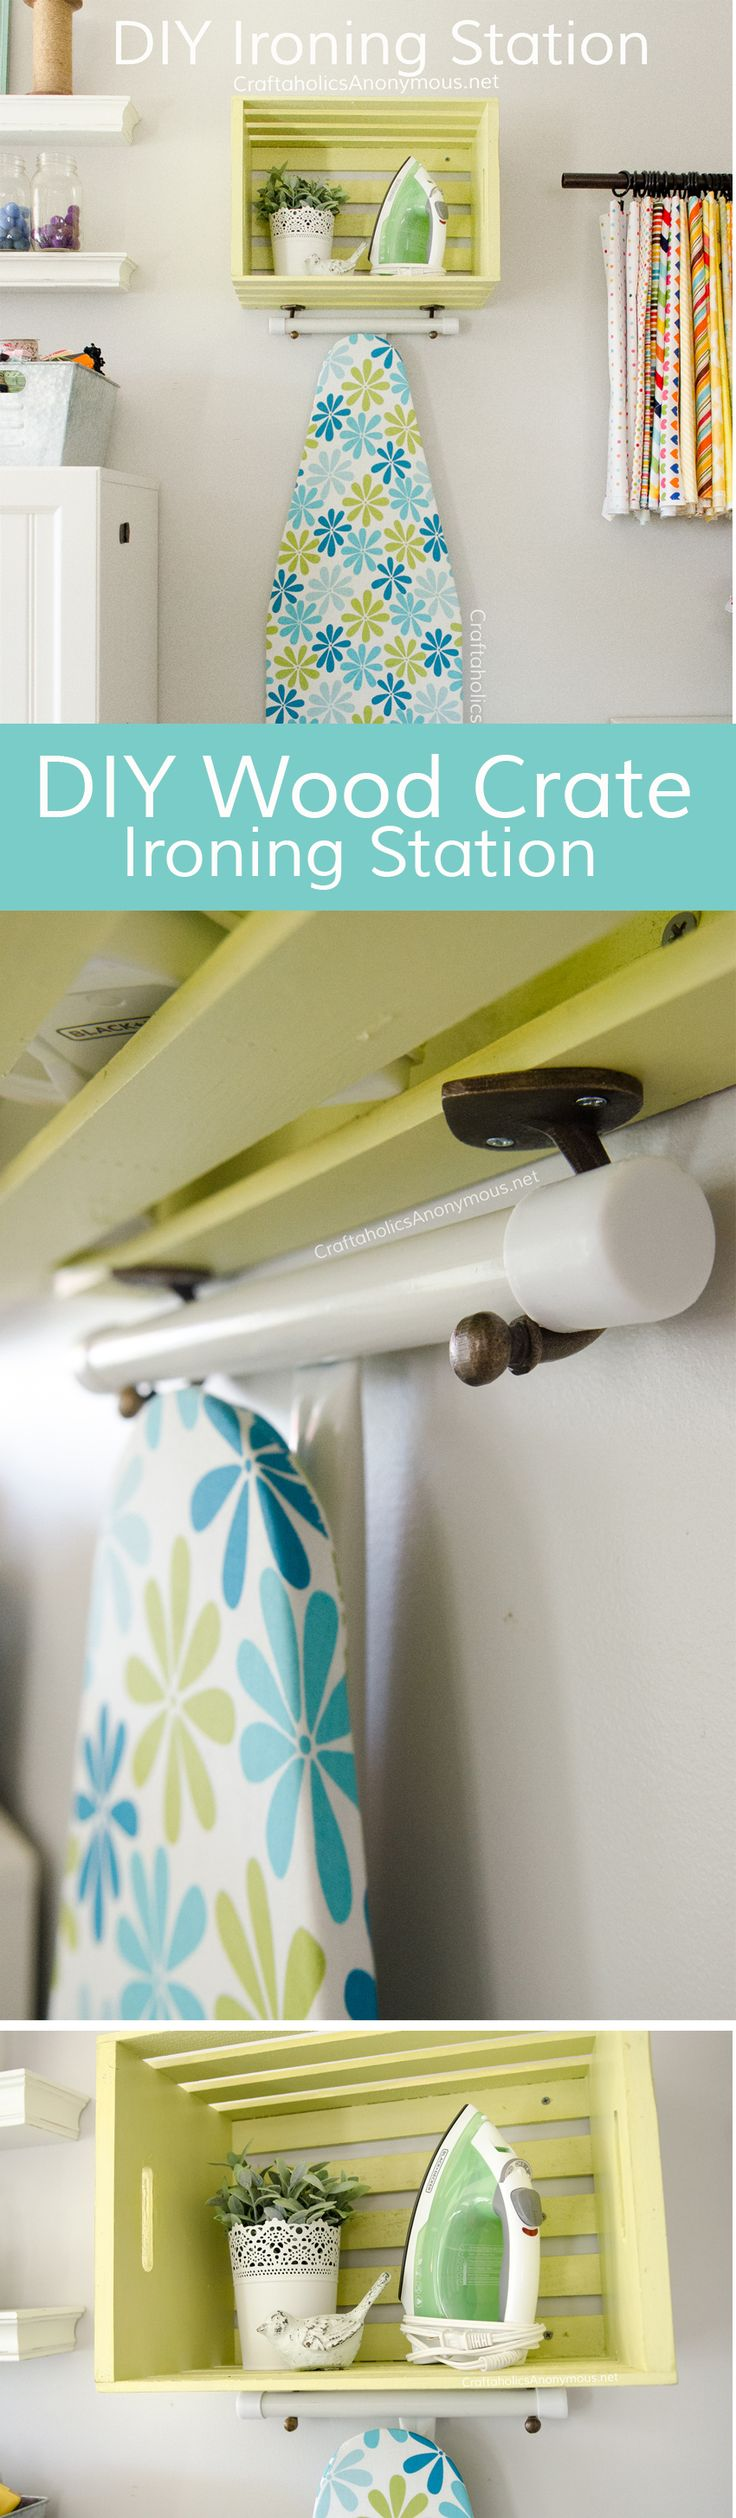 DIY Ironing Station made with Wood crate and hooks. EASY! Great for craft room or laundry room organization.